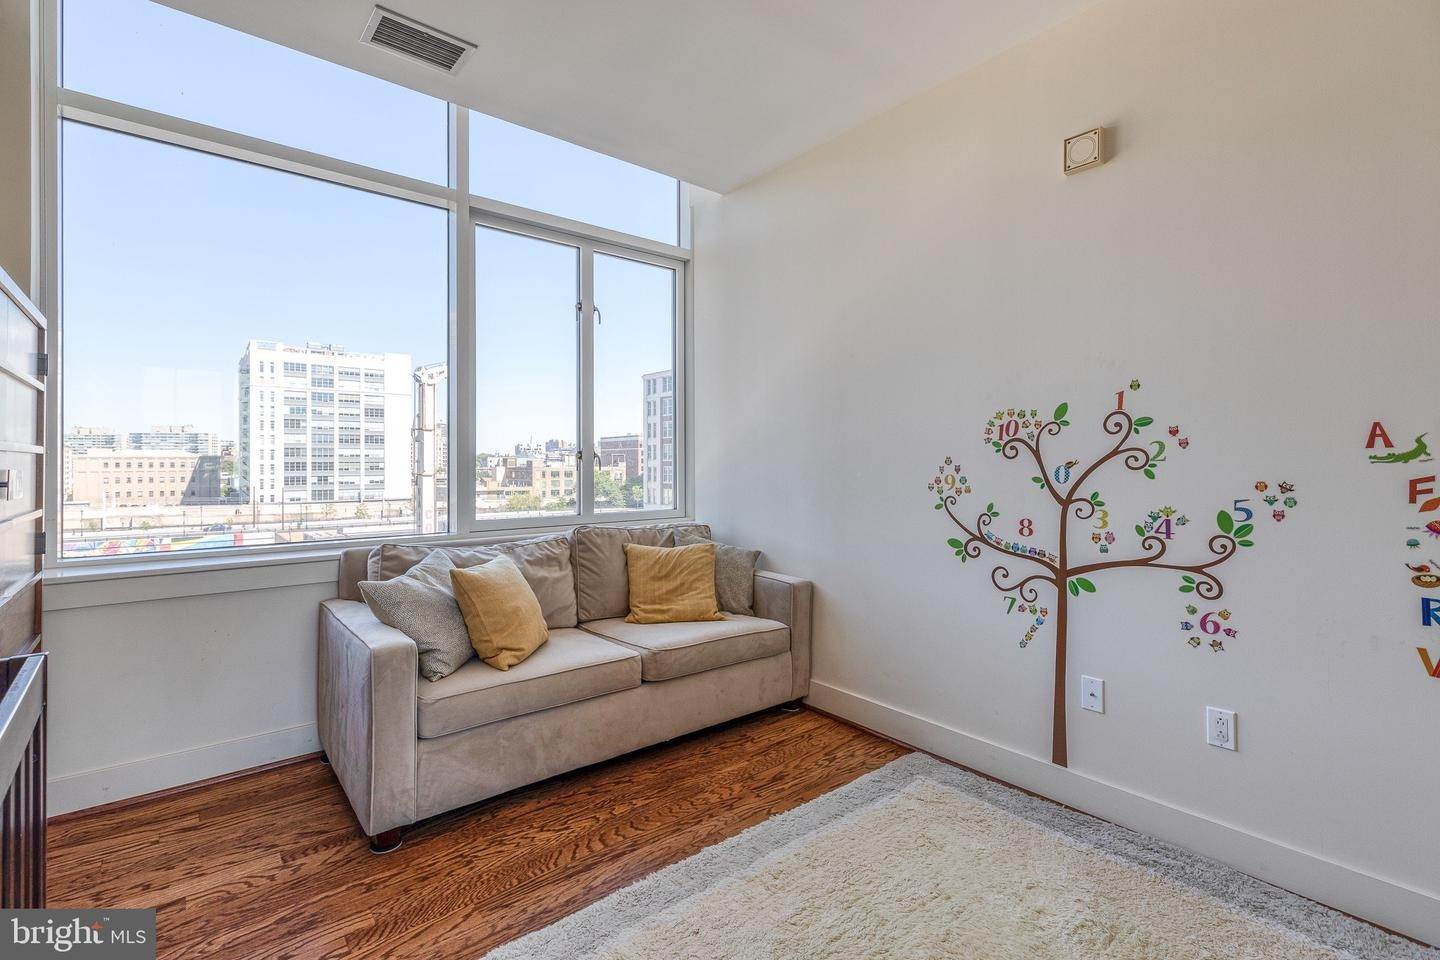 19. Apartments for Sale at 23 S 23RD ST #5B Philadelphia, Pennsylvania 19103 United States